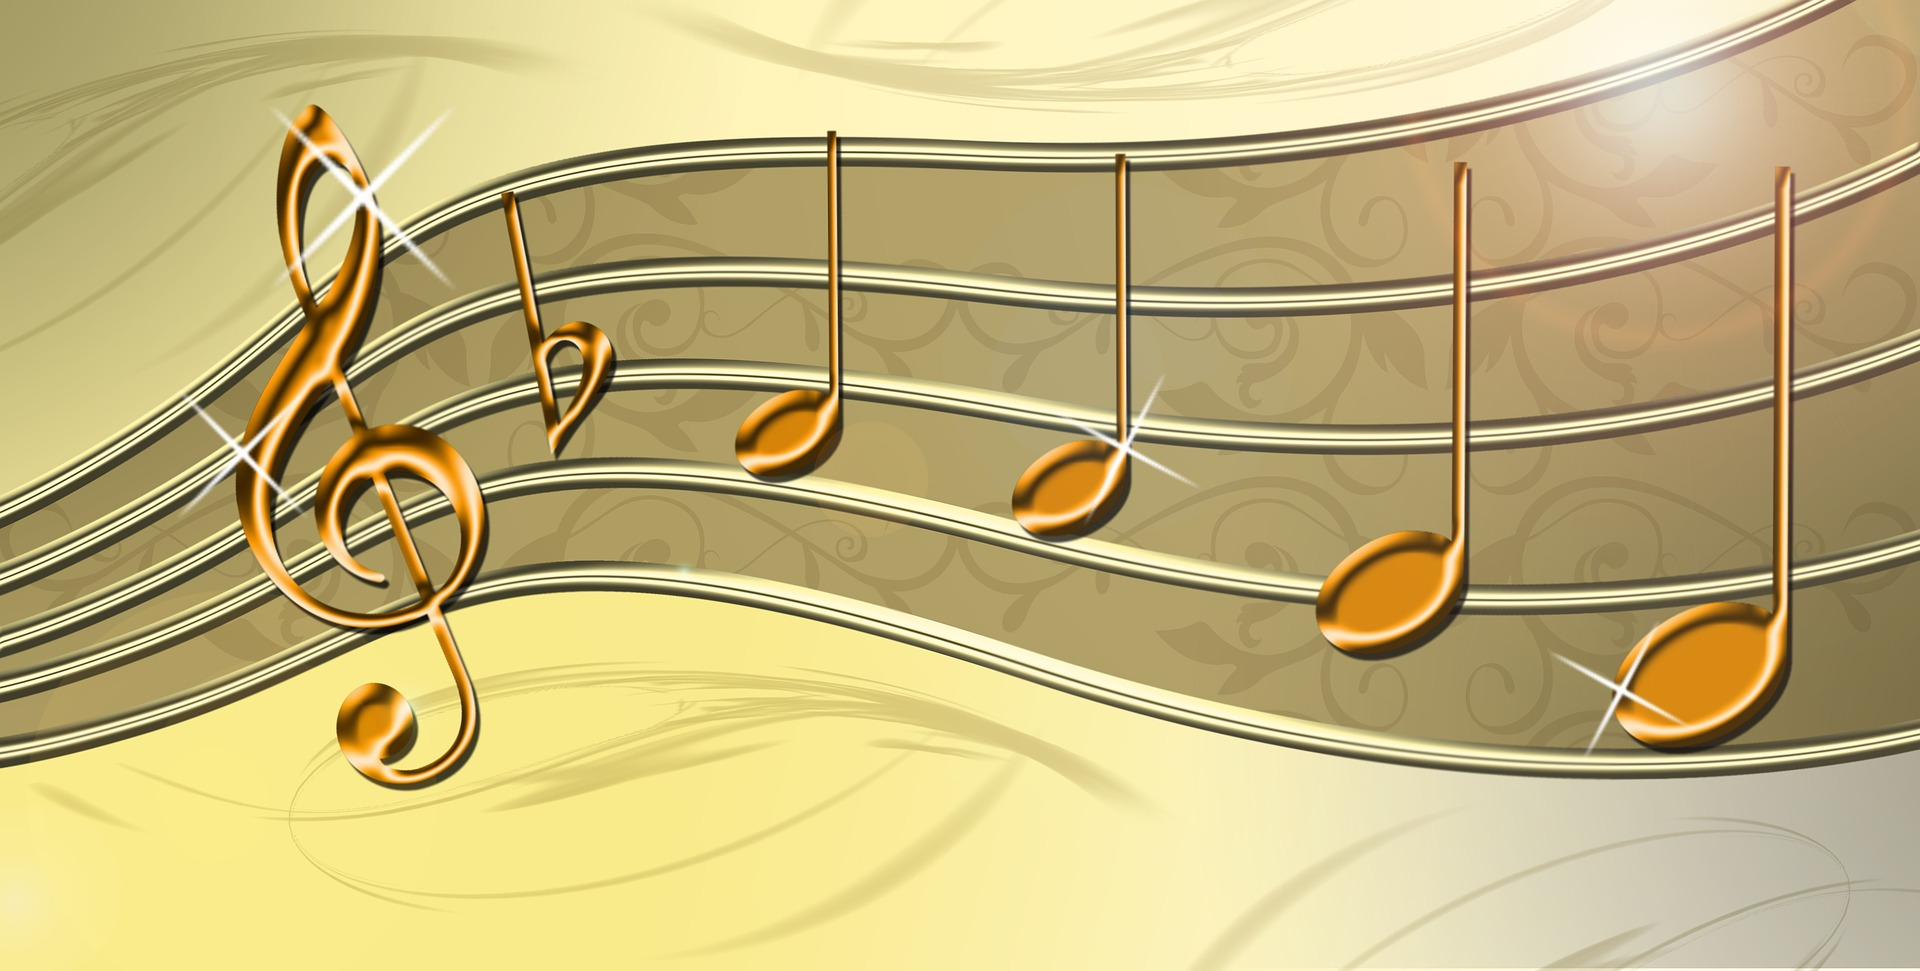 Gold music clef and notes on staff